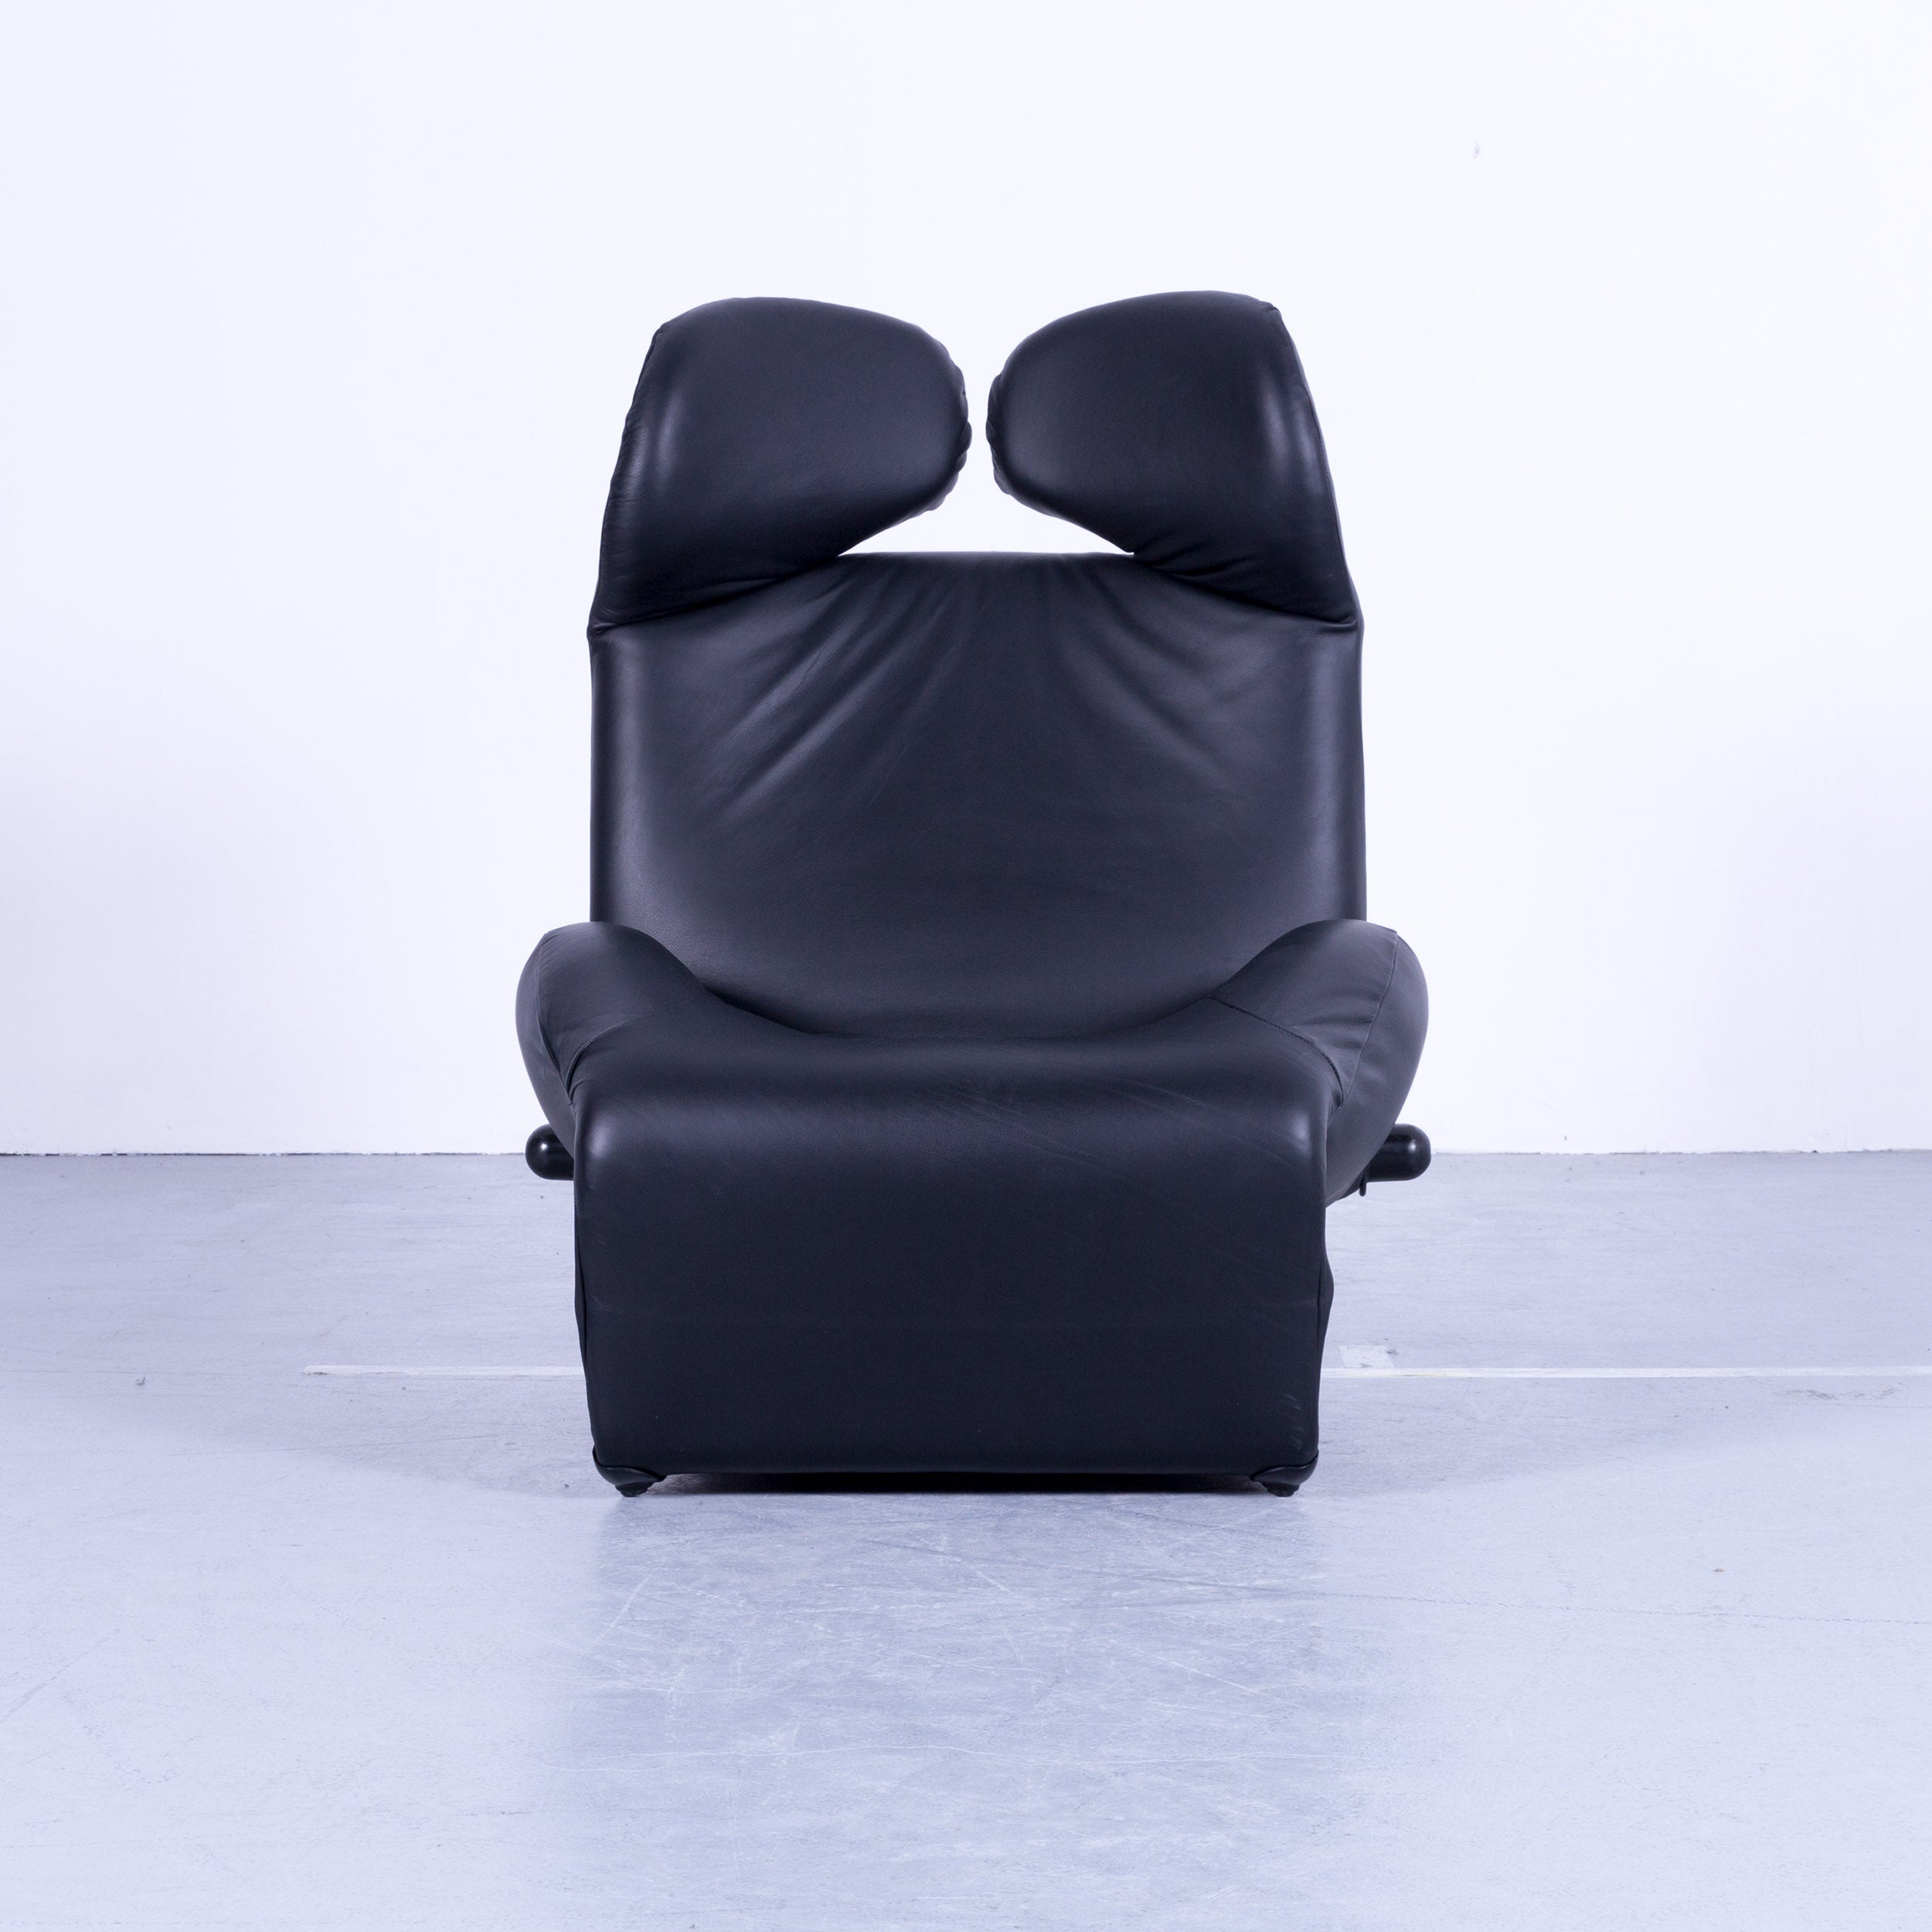 Wink Sessel Bezug Cassina Wink Designer Chair Black Leather Function Recliner By Toshiyuki Kita